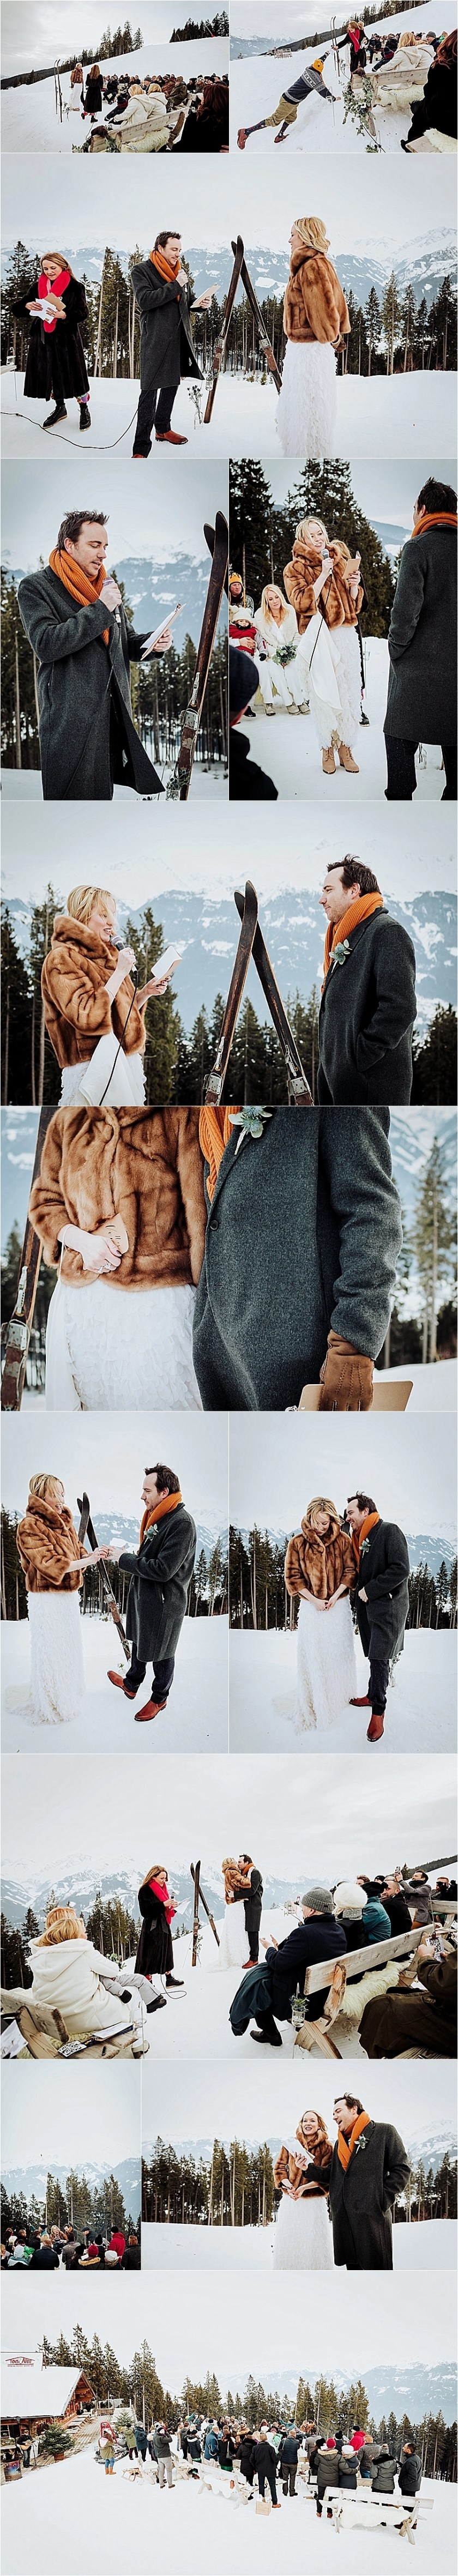 An outdoor winter wedding ceremony in the Austrian Alps by Wild Connections Photography